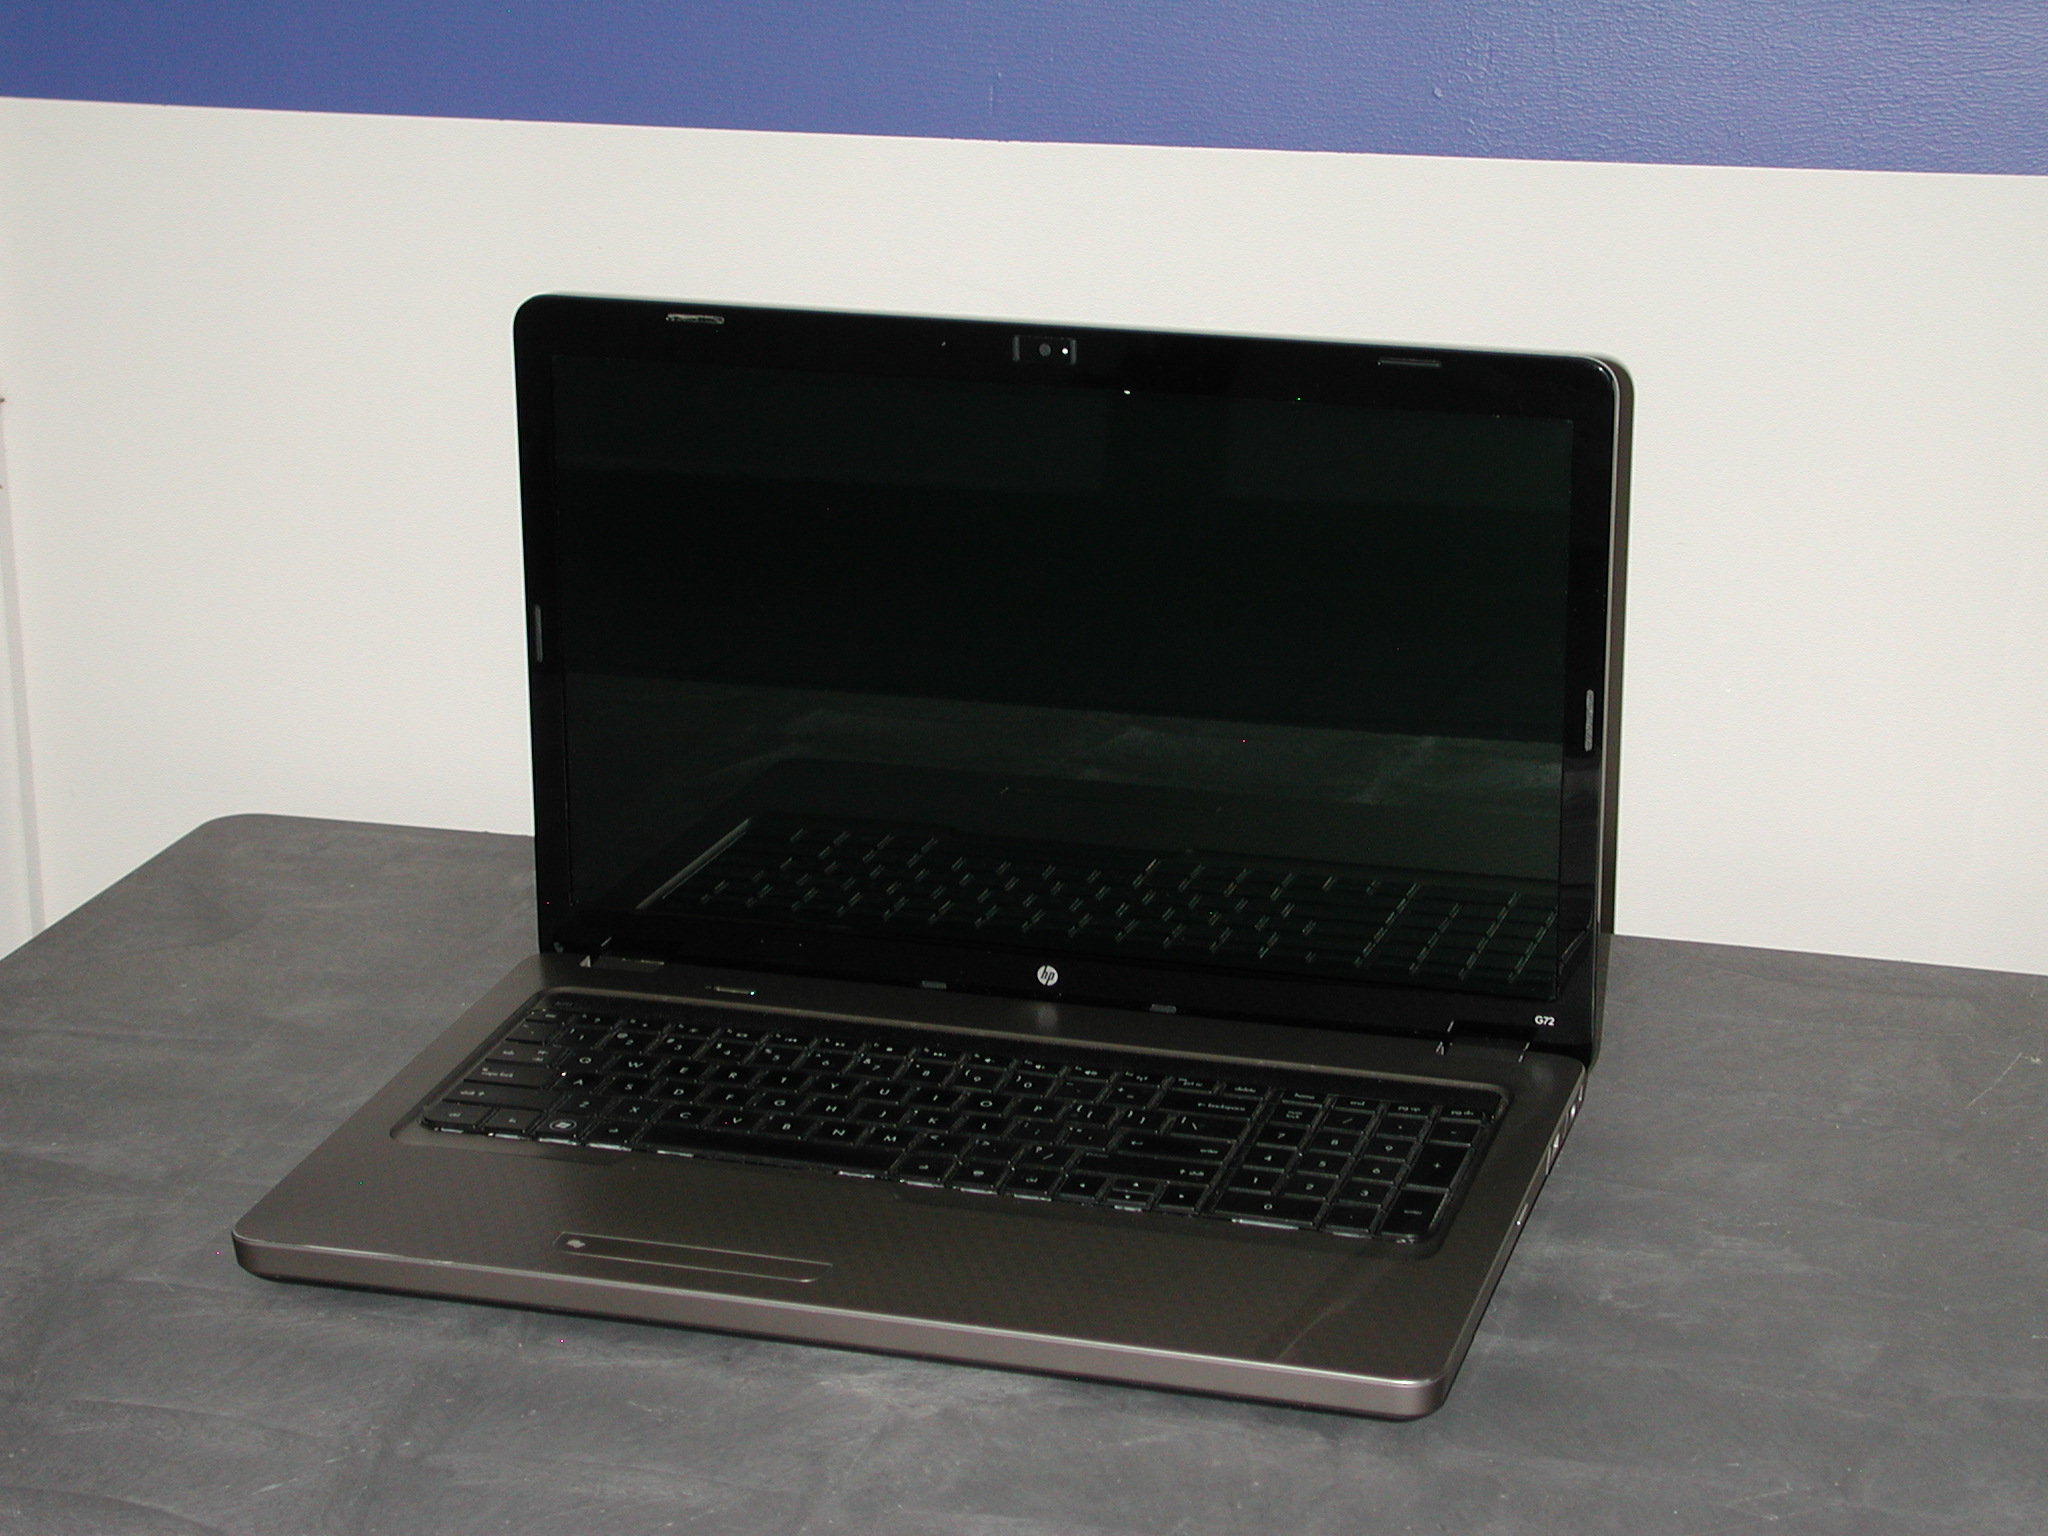 Hp notebook for sale - Hp G72_c55dx 17 Laptop